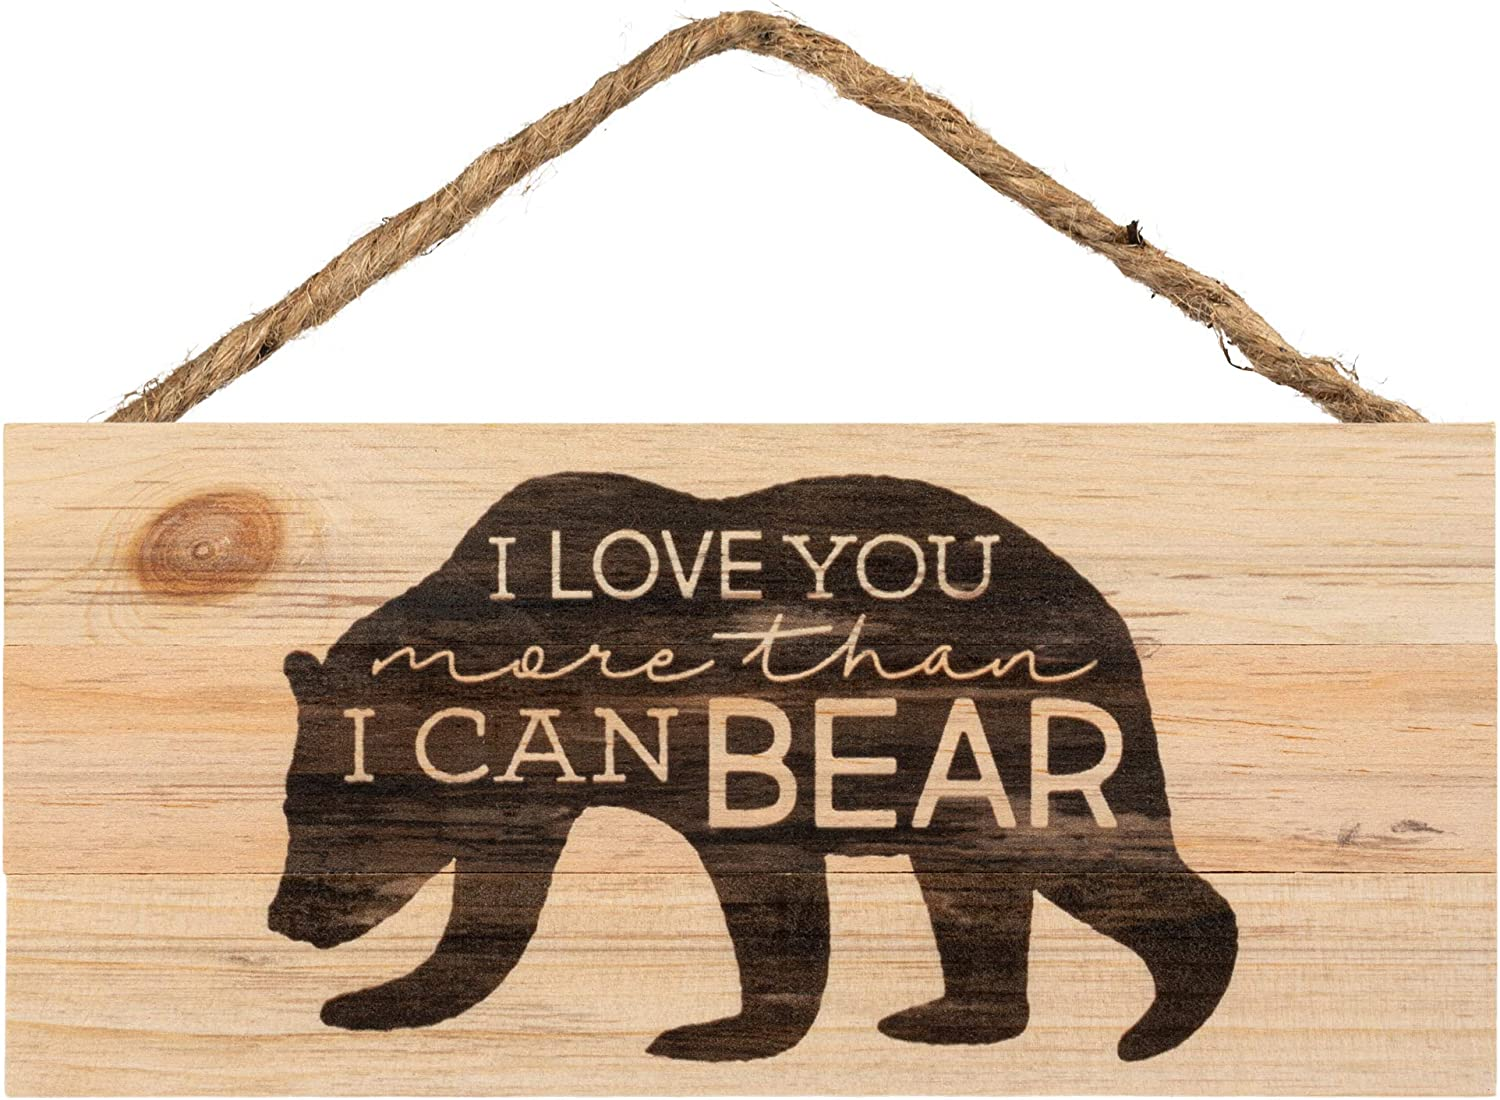 P. Graham Dunn Love You More Than I Can Bear Natural 10 x 4.5 Wood Wall Hanging Plaque Sign